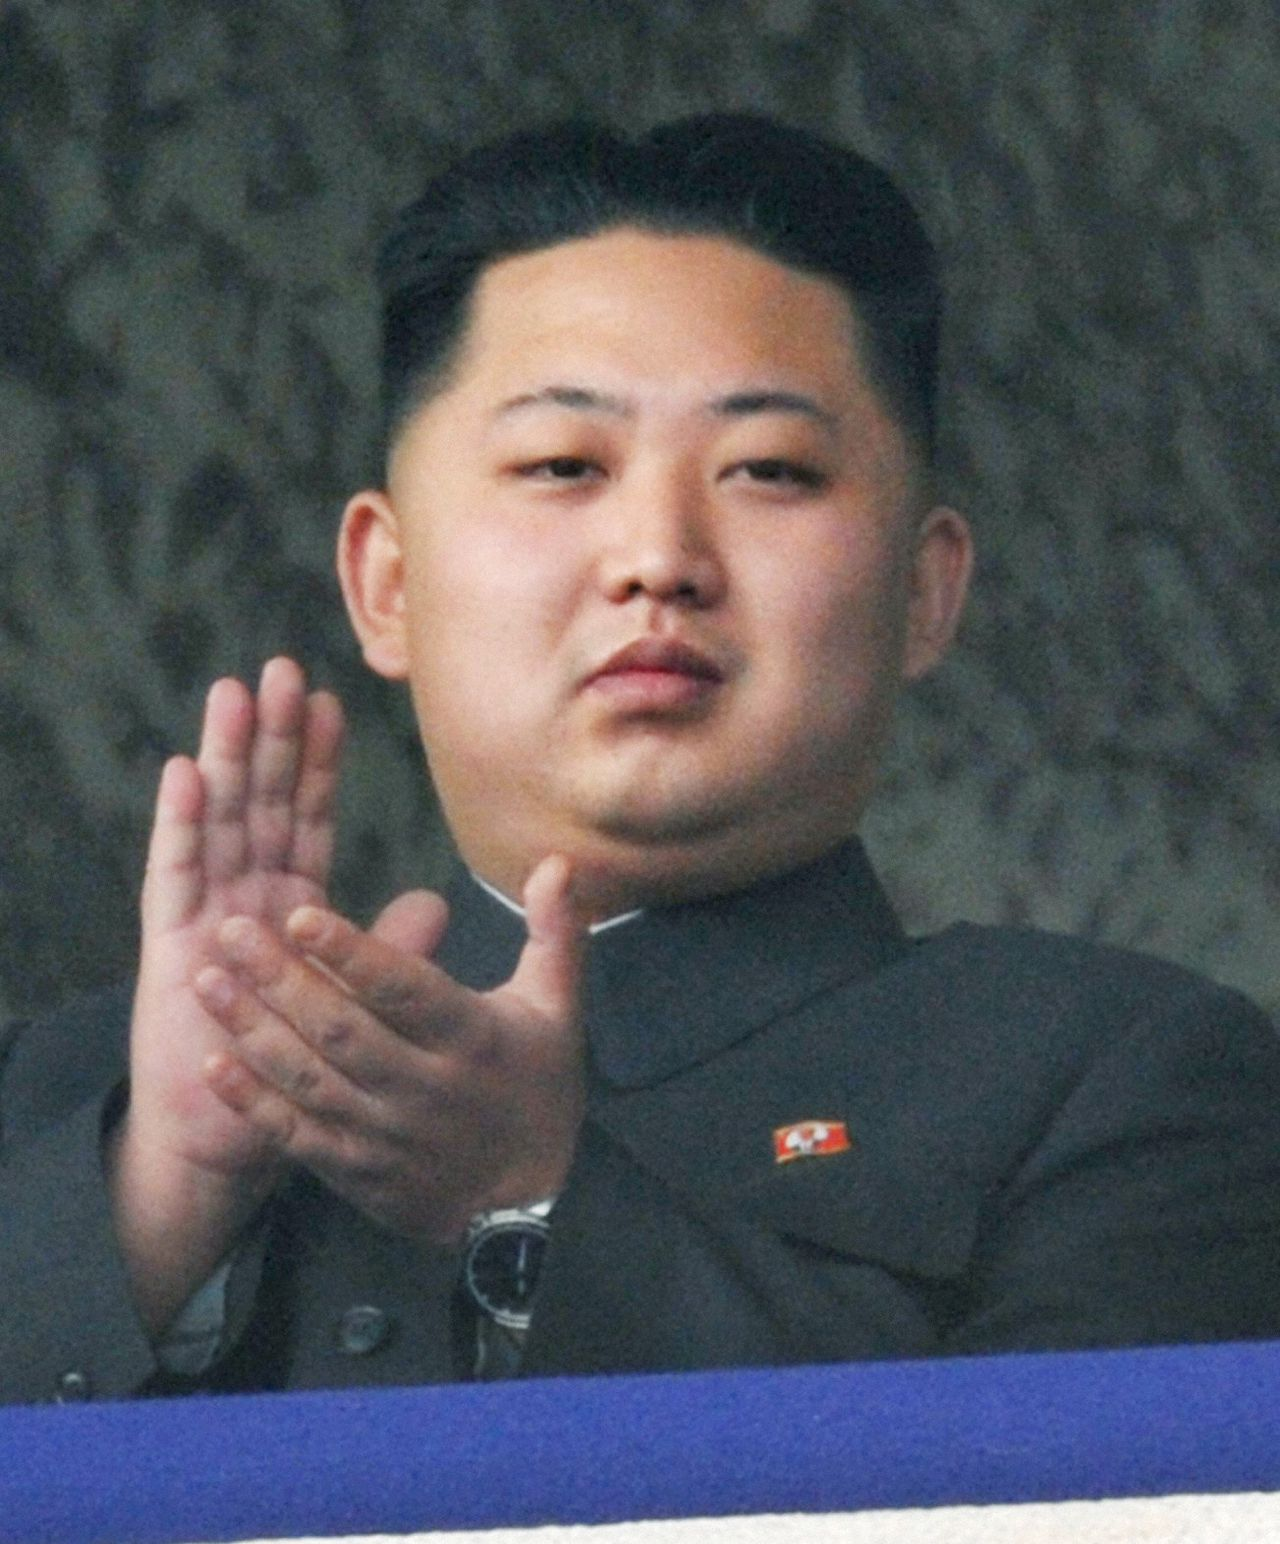 "Kim Jong-un, the youngest son of North Korean leader Kim Jong-il, applauds as he watches a parade to commemorate the 65th anniversary of the founding of the Workers' Party of Korea in Pyongyang in this October 10, 2010 file photo. North Korean leader Kim Jong-il died on a train trip, state television reported on December 19, 2011 sparking immediate concern over who is in control of the reclusive state and its nuclear programme. A tearful announcer dressed in black said the 69-year old had died on December 17, 2011 of physical and mental over-work on his way to give ""field guidance"". REUTERS/Kyodo/Files (NORTH KOREA - Tags: POLITICS TPX IMAGES OF THE DAY ANNIVERSARY OBITUARY) JAPAN OUT. NO COMMERCIAL OR EDITORIAL SALES IN JAPAN. FOR EDITORIAL USE ONLY. NOT FOR SALE FOR MARKETING OR ADVERTISING CAMPAIGNS"